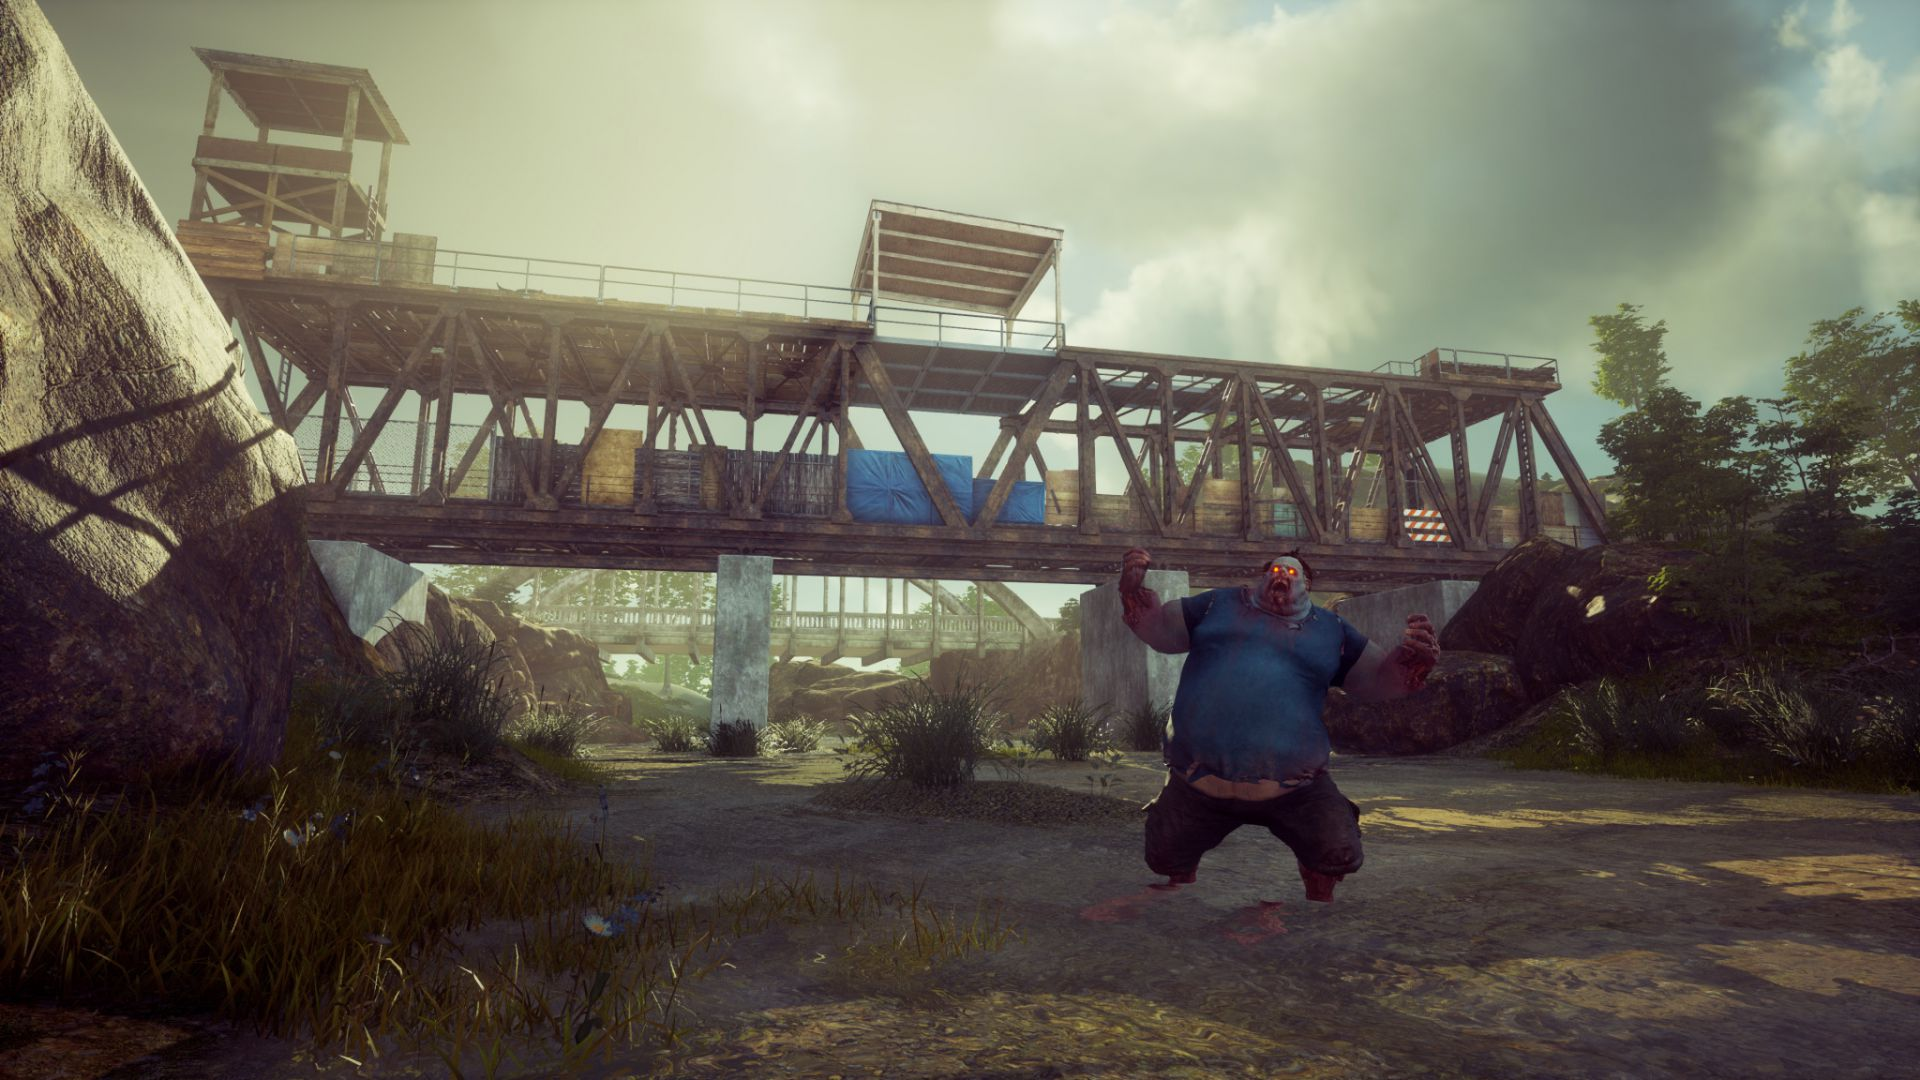 BridgeFortAfter State of Decay 2